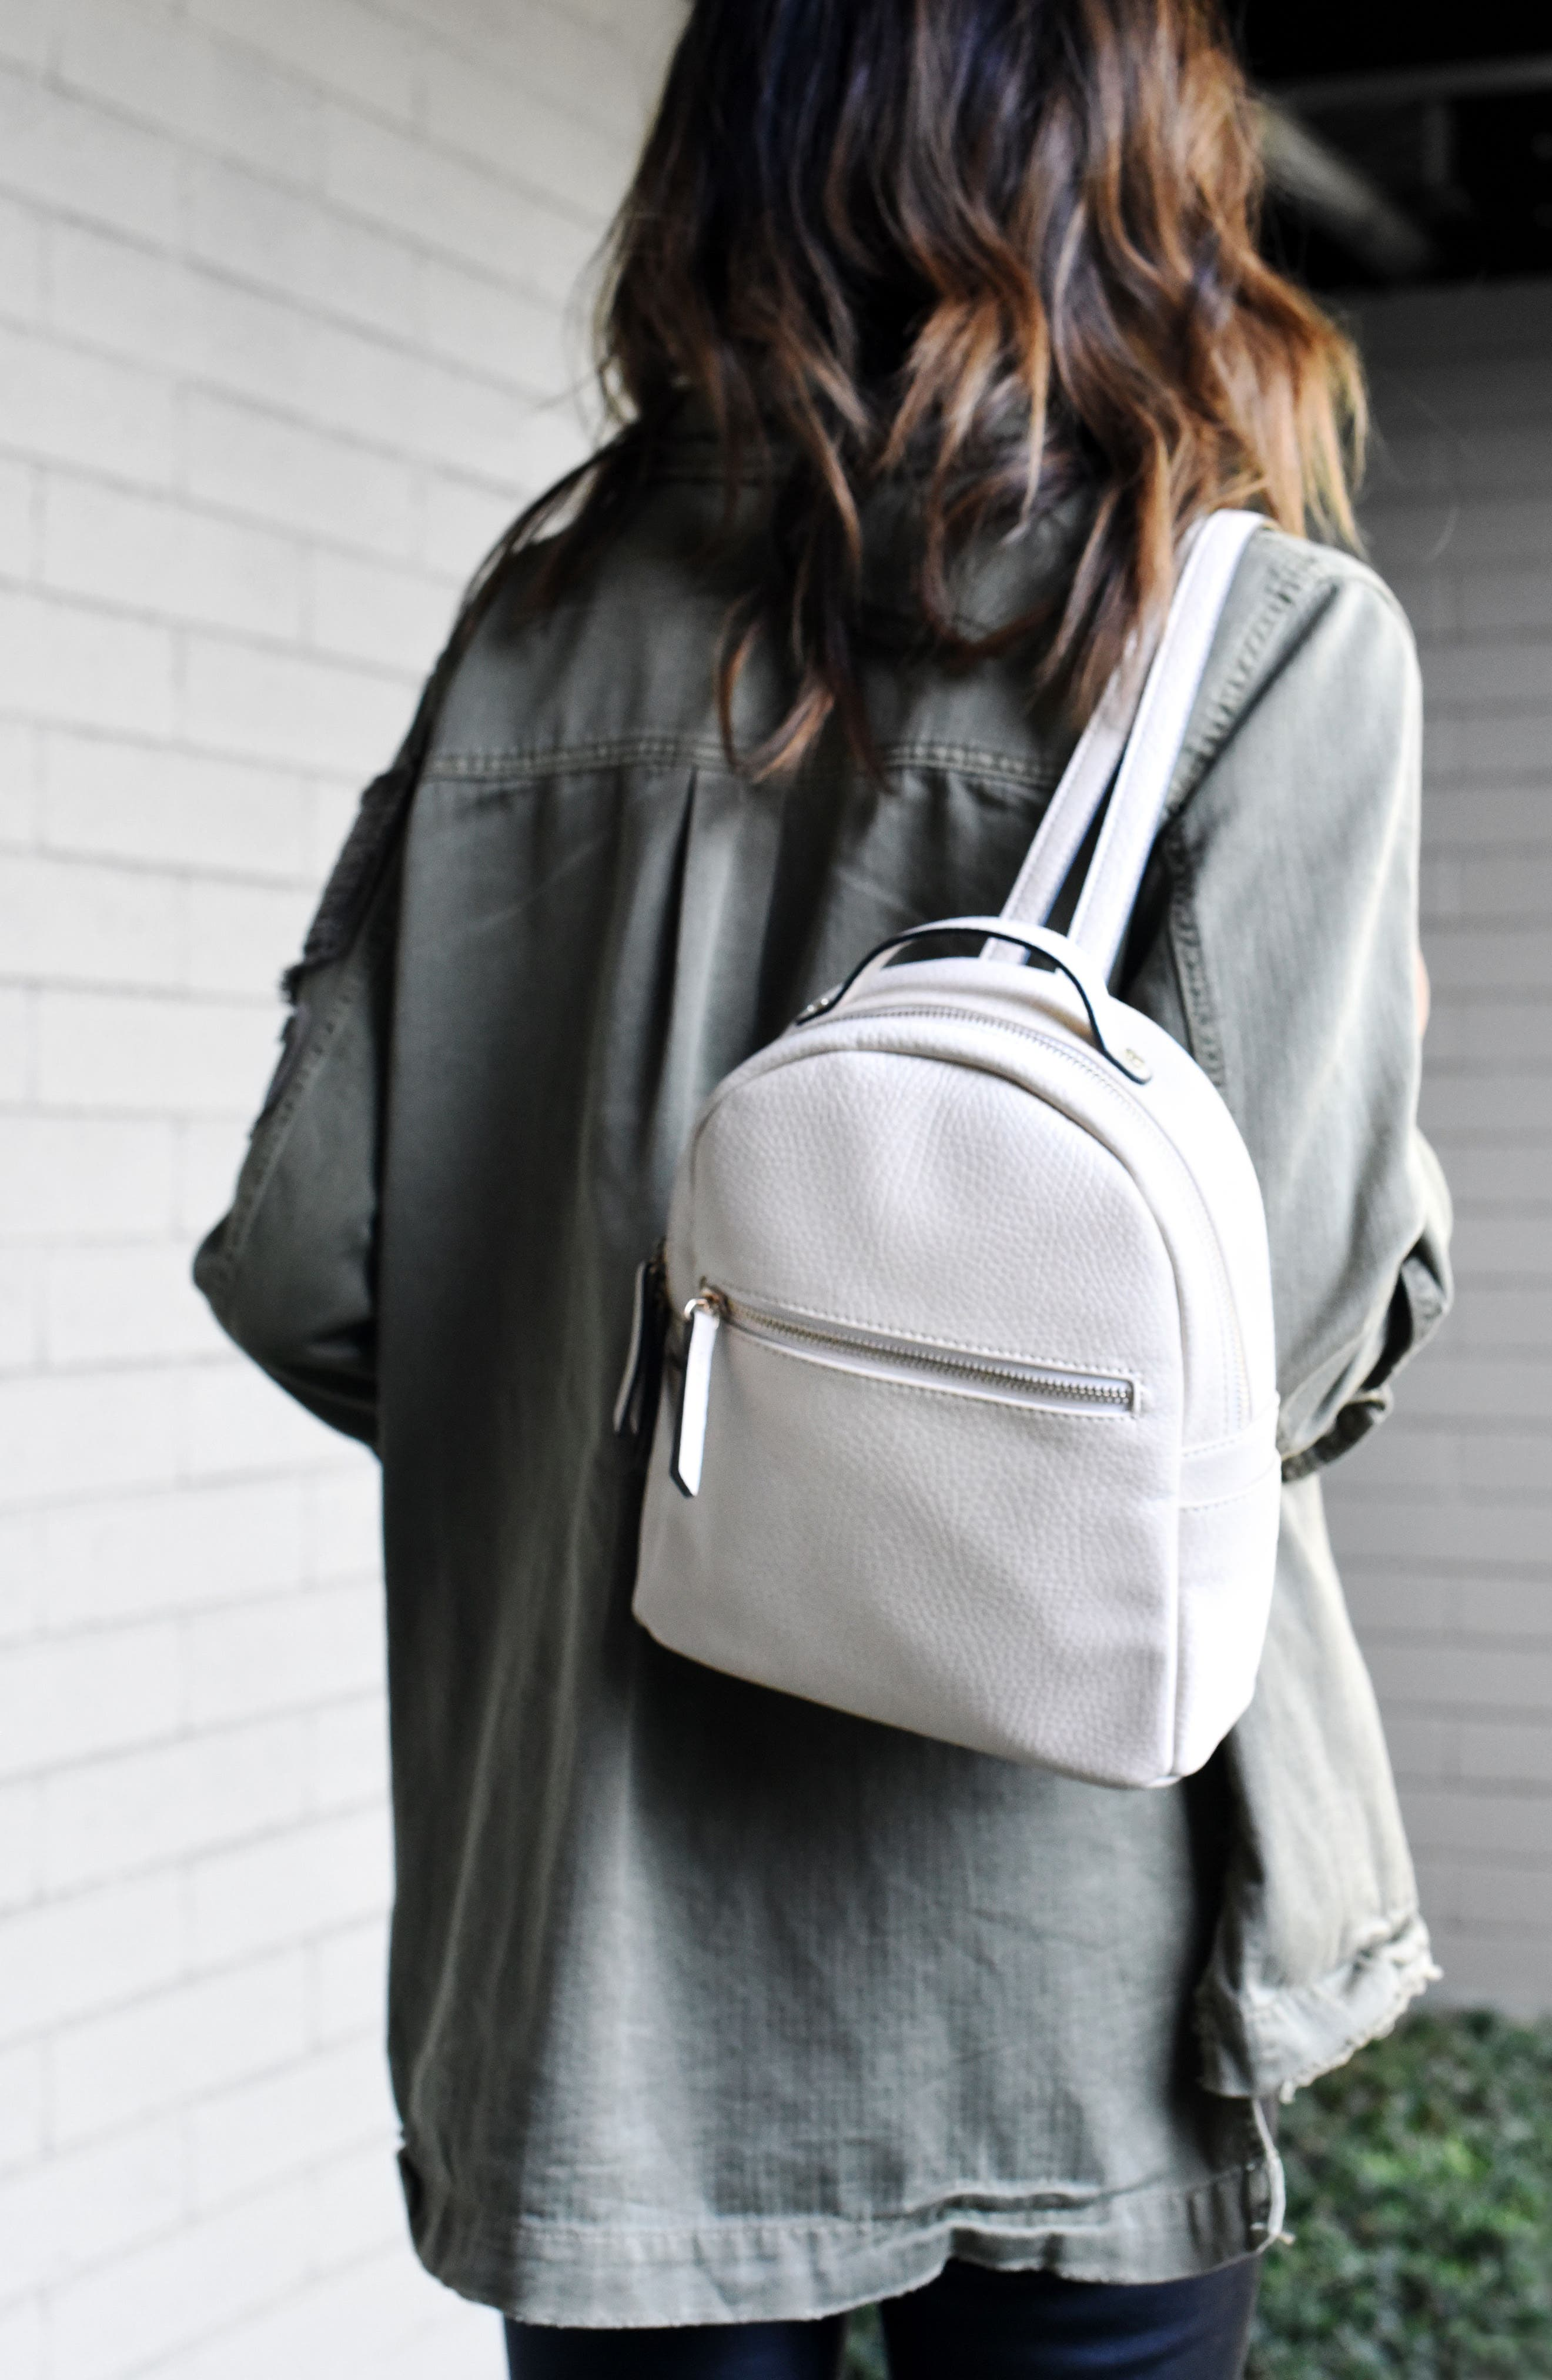 Mali + Lili Vegan Leather Backpack,                             Alternate thumbnail 7, color,